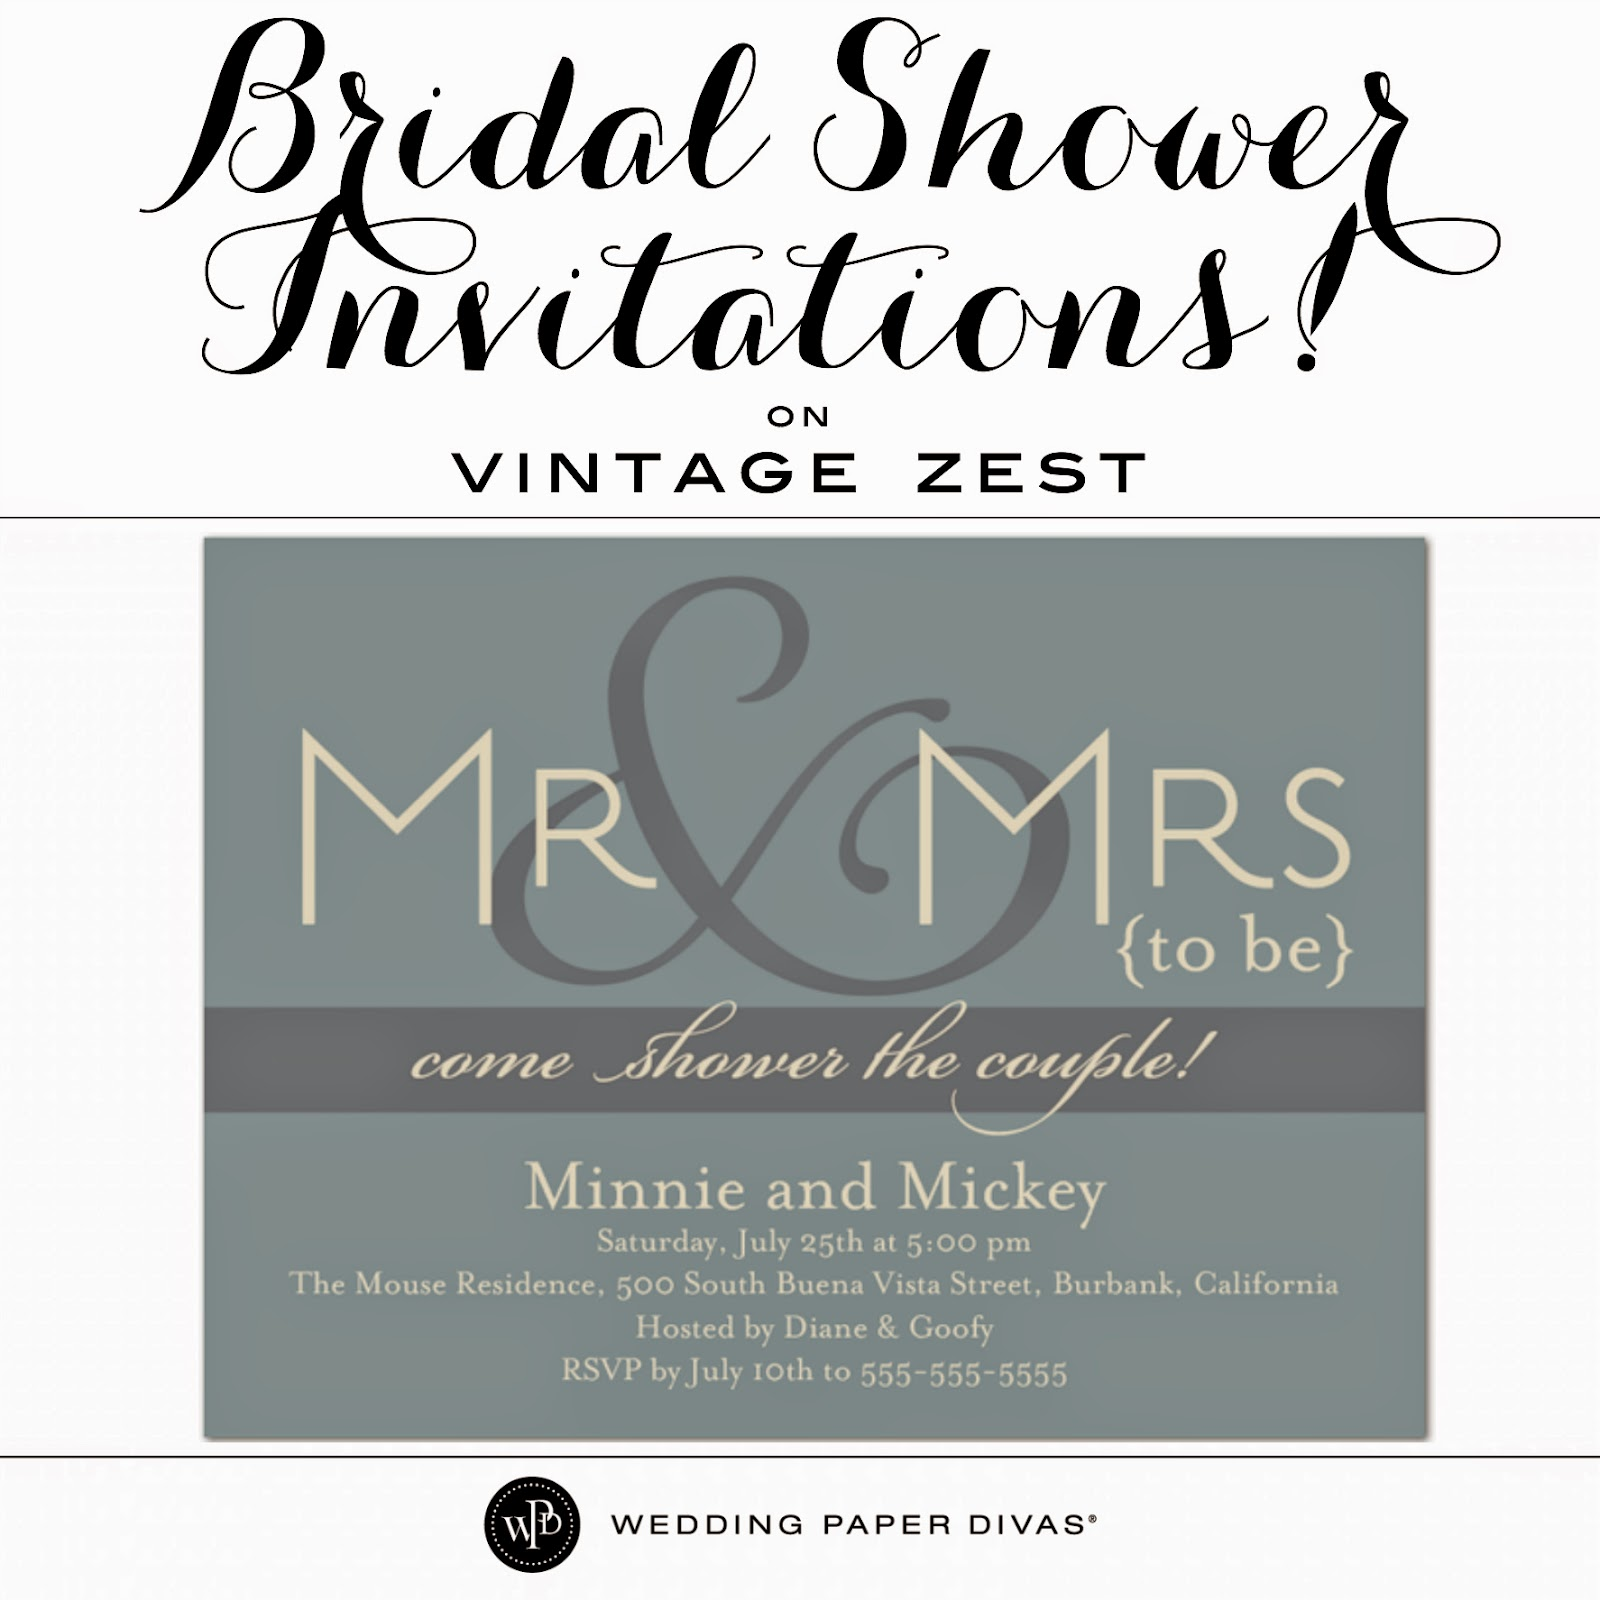 Bridal Shower Invitations on Diane's Vintage Zest!  #ad #WeddingPaperDivas #IC